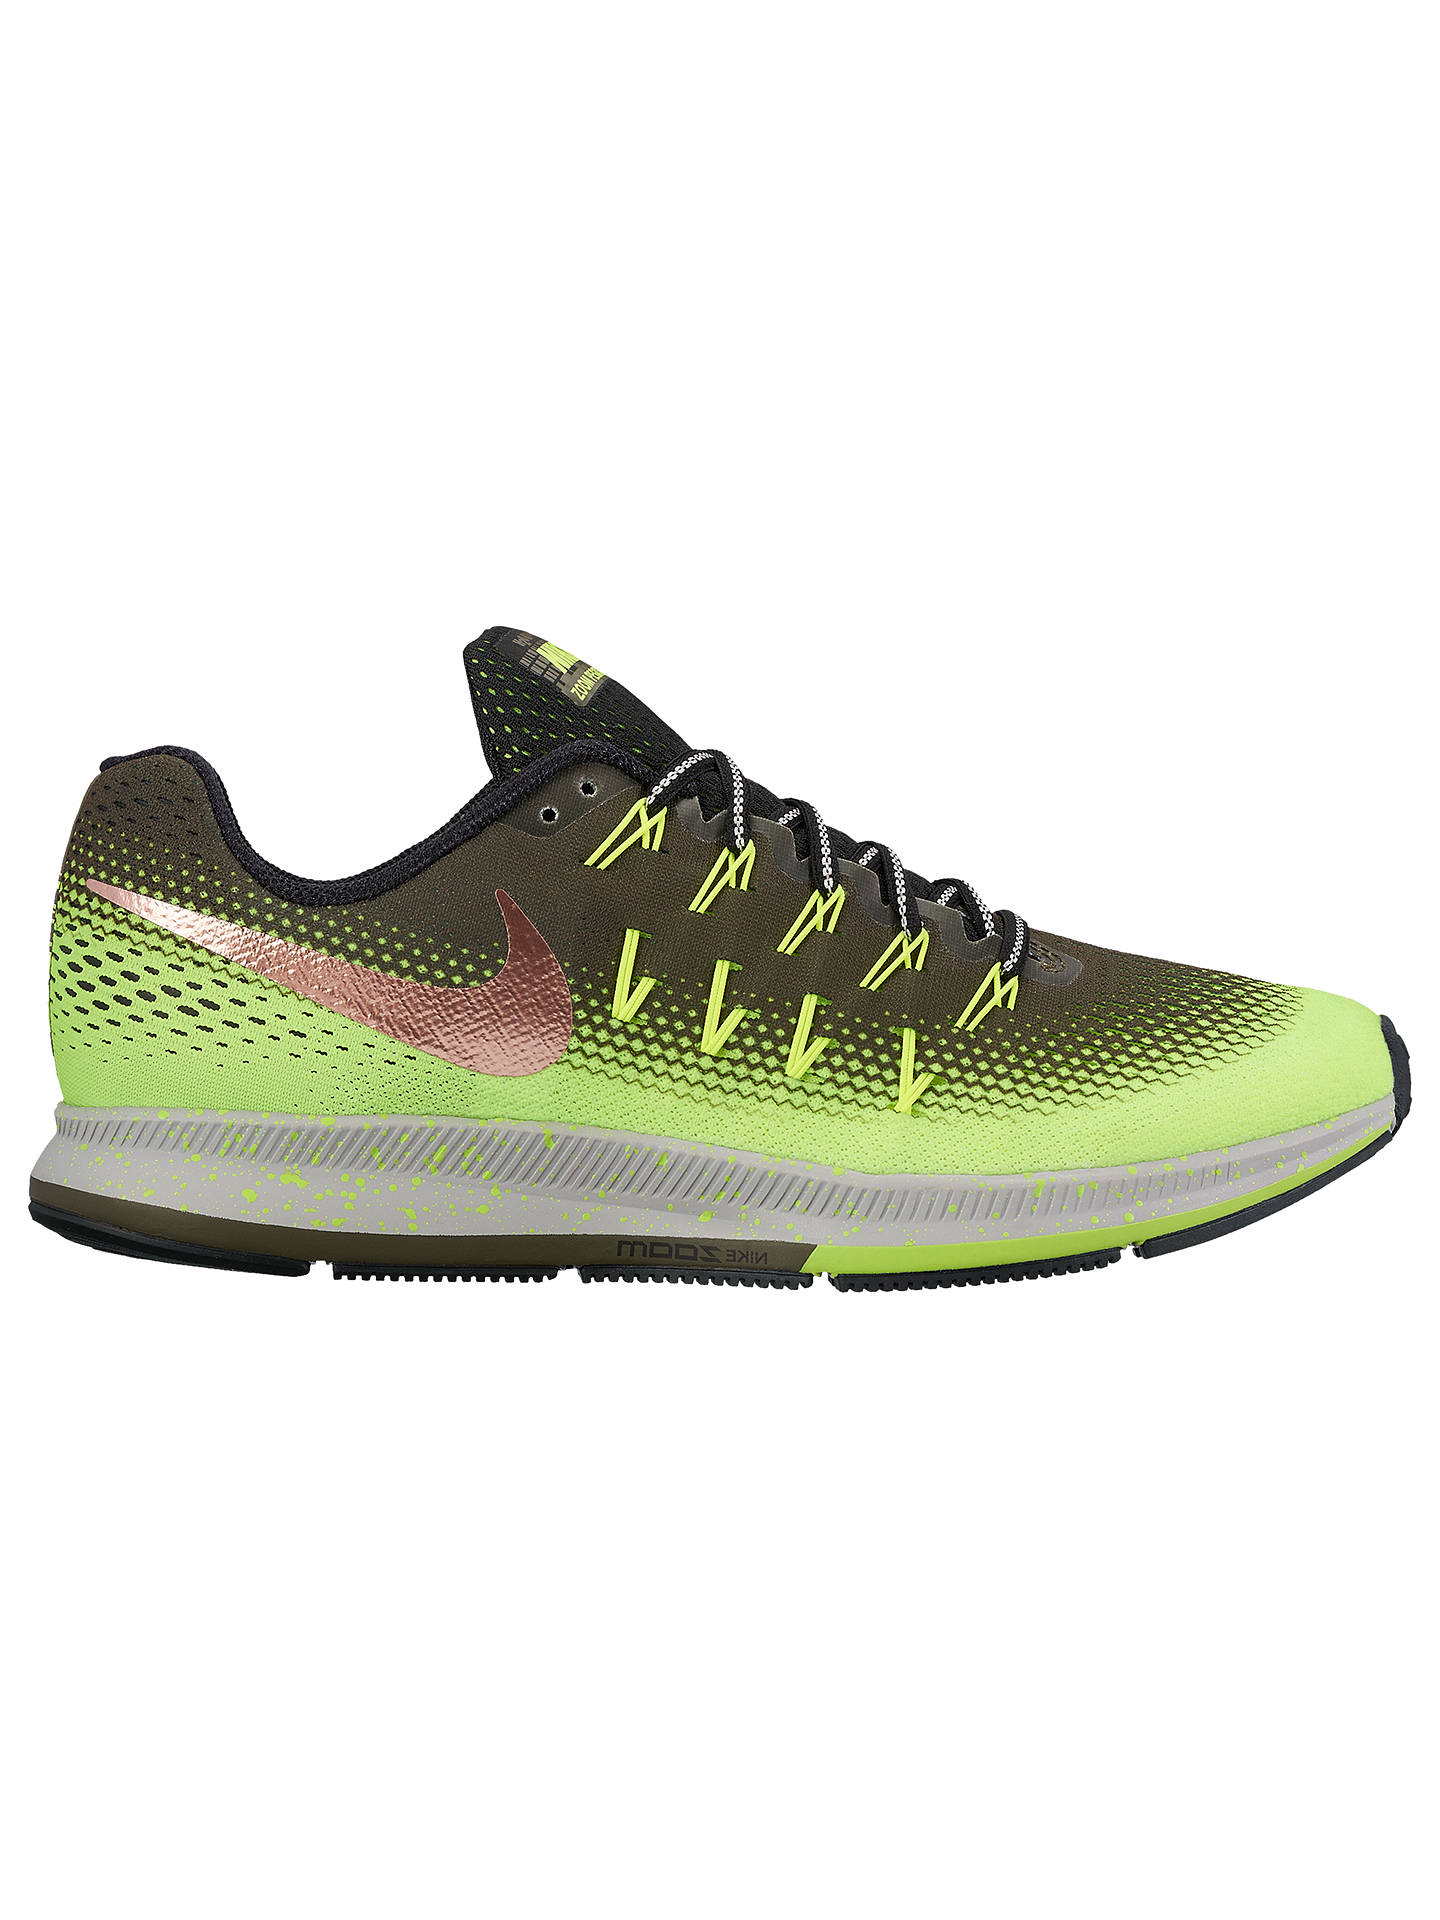 detailed look e35aa 1048b Buy Nike Air Zoom Pegasus 33 Shield Men s Running Shoes, Cargo  Khaki Metallic Red ...